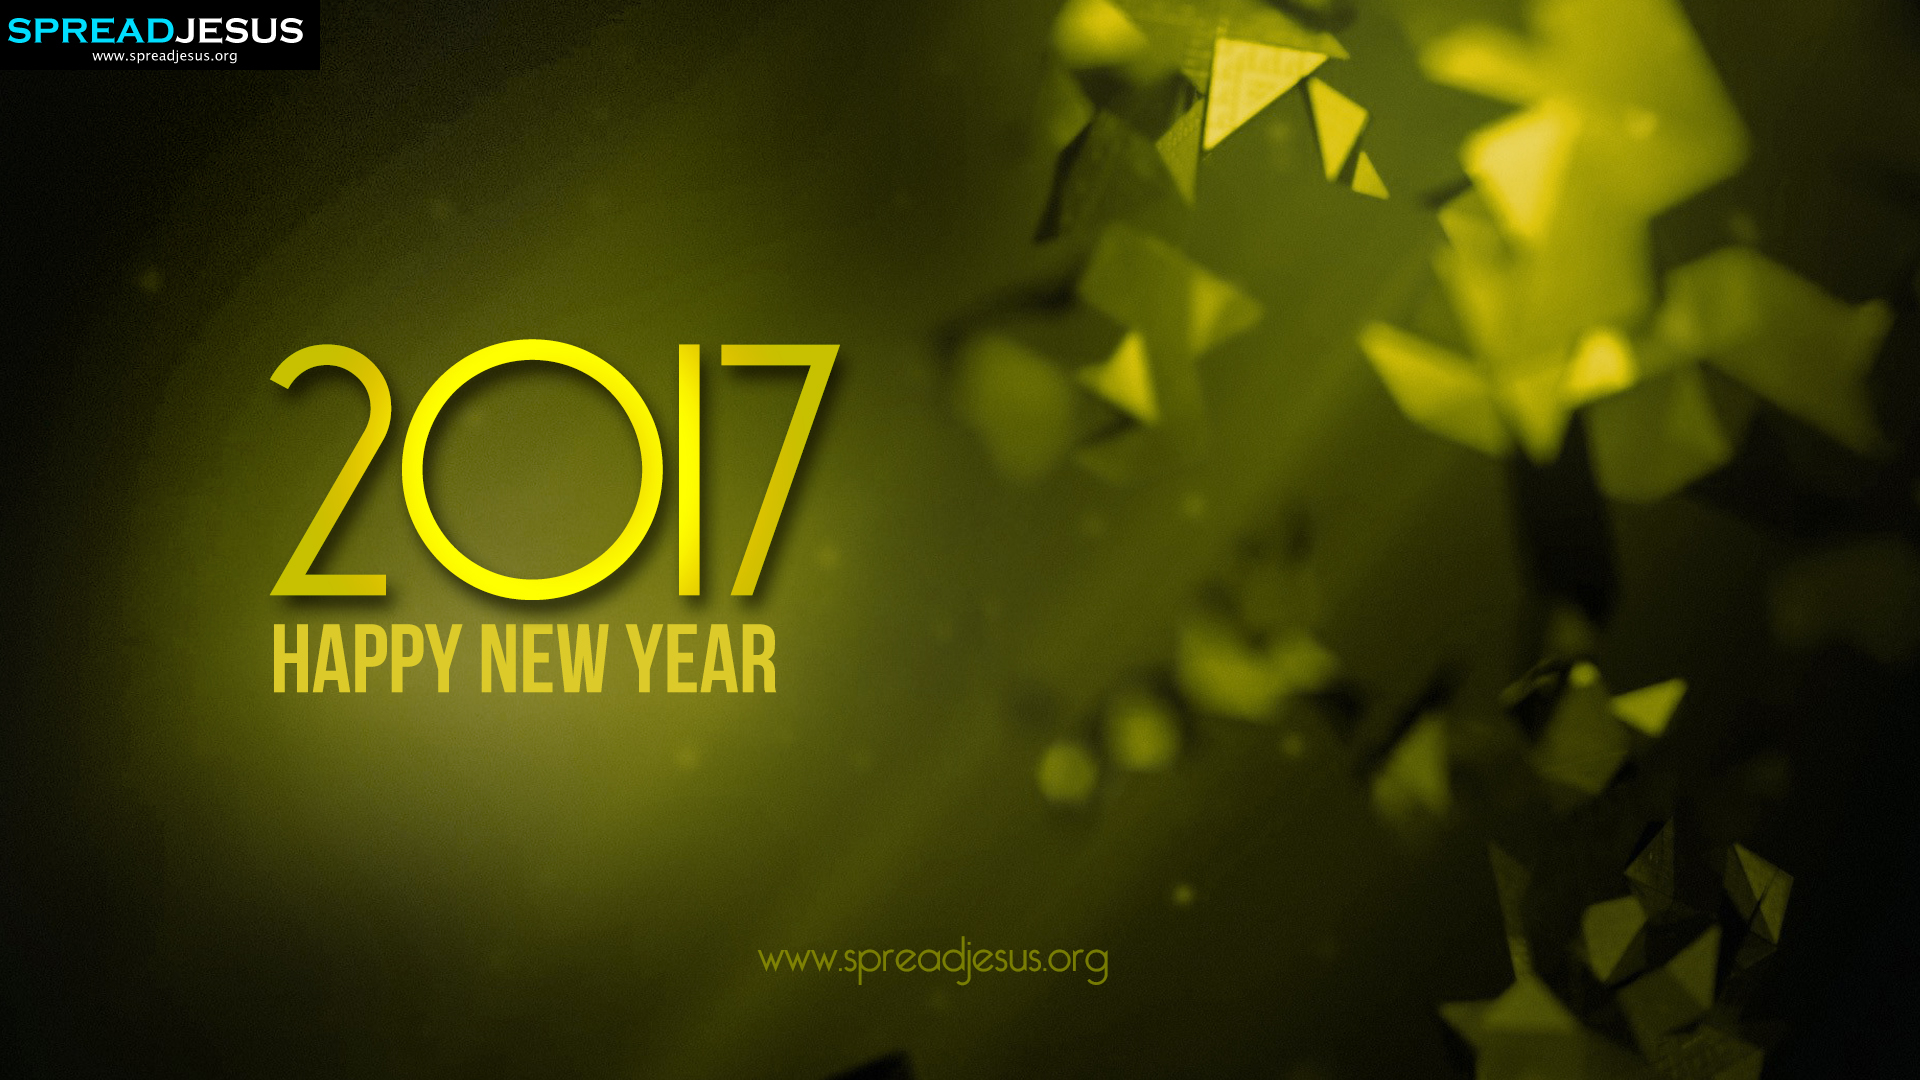 Happy New Year 2017 Hd Wallpapers 2017 New Year Latest Images